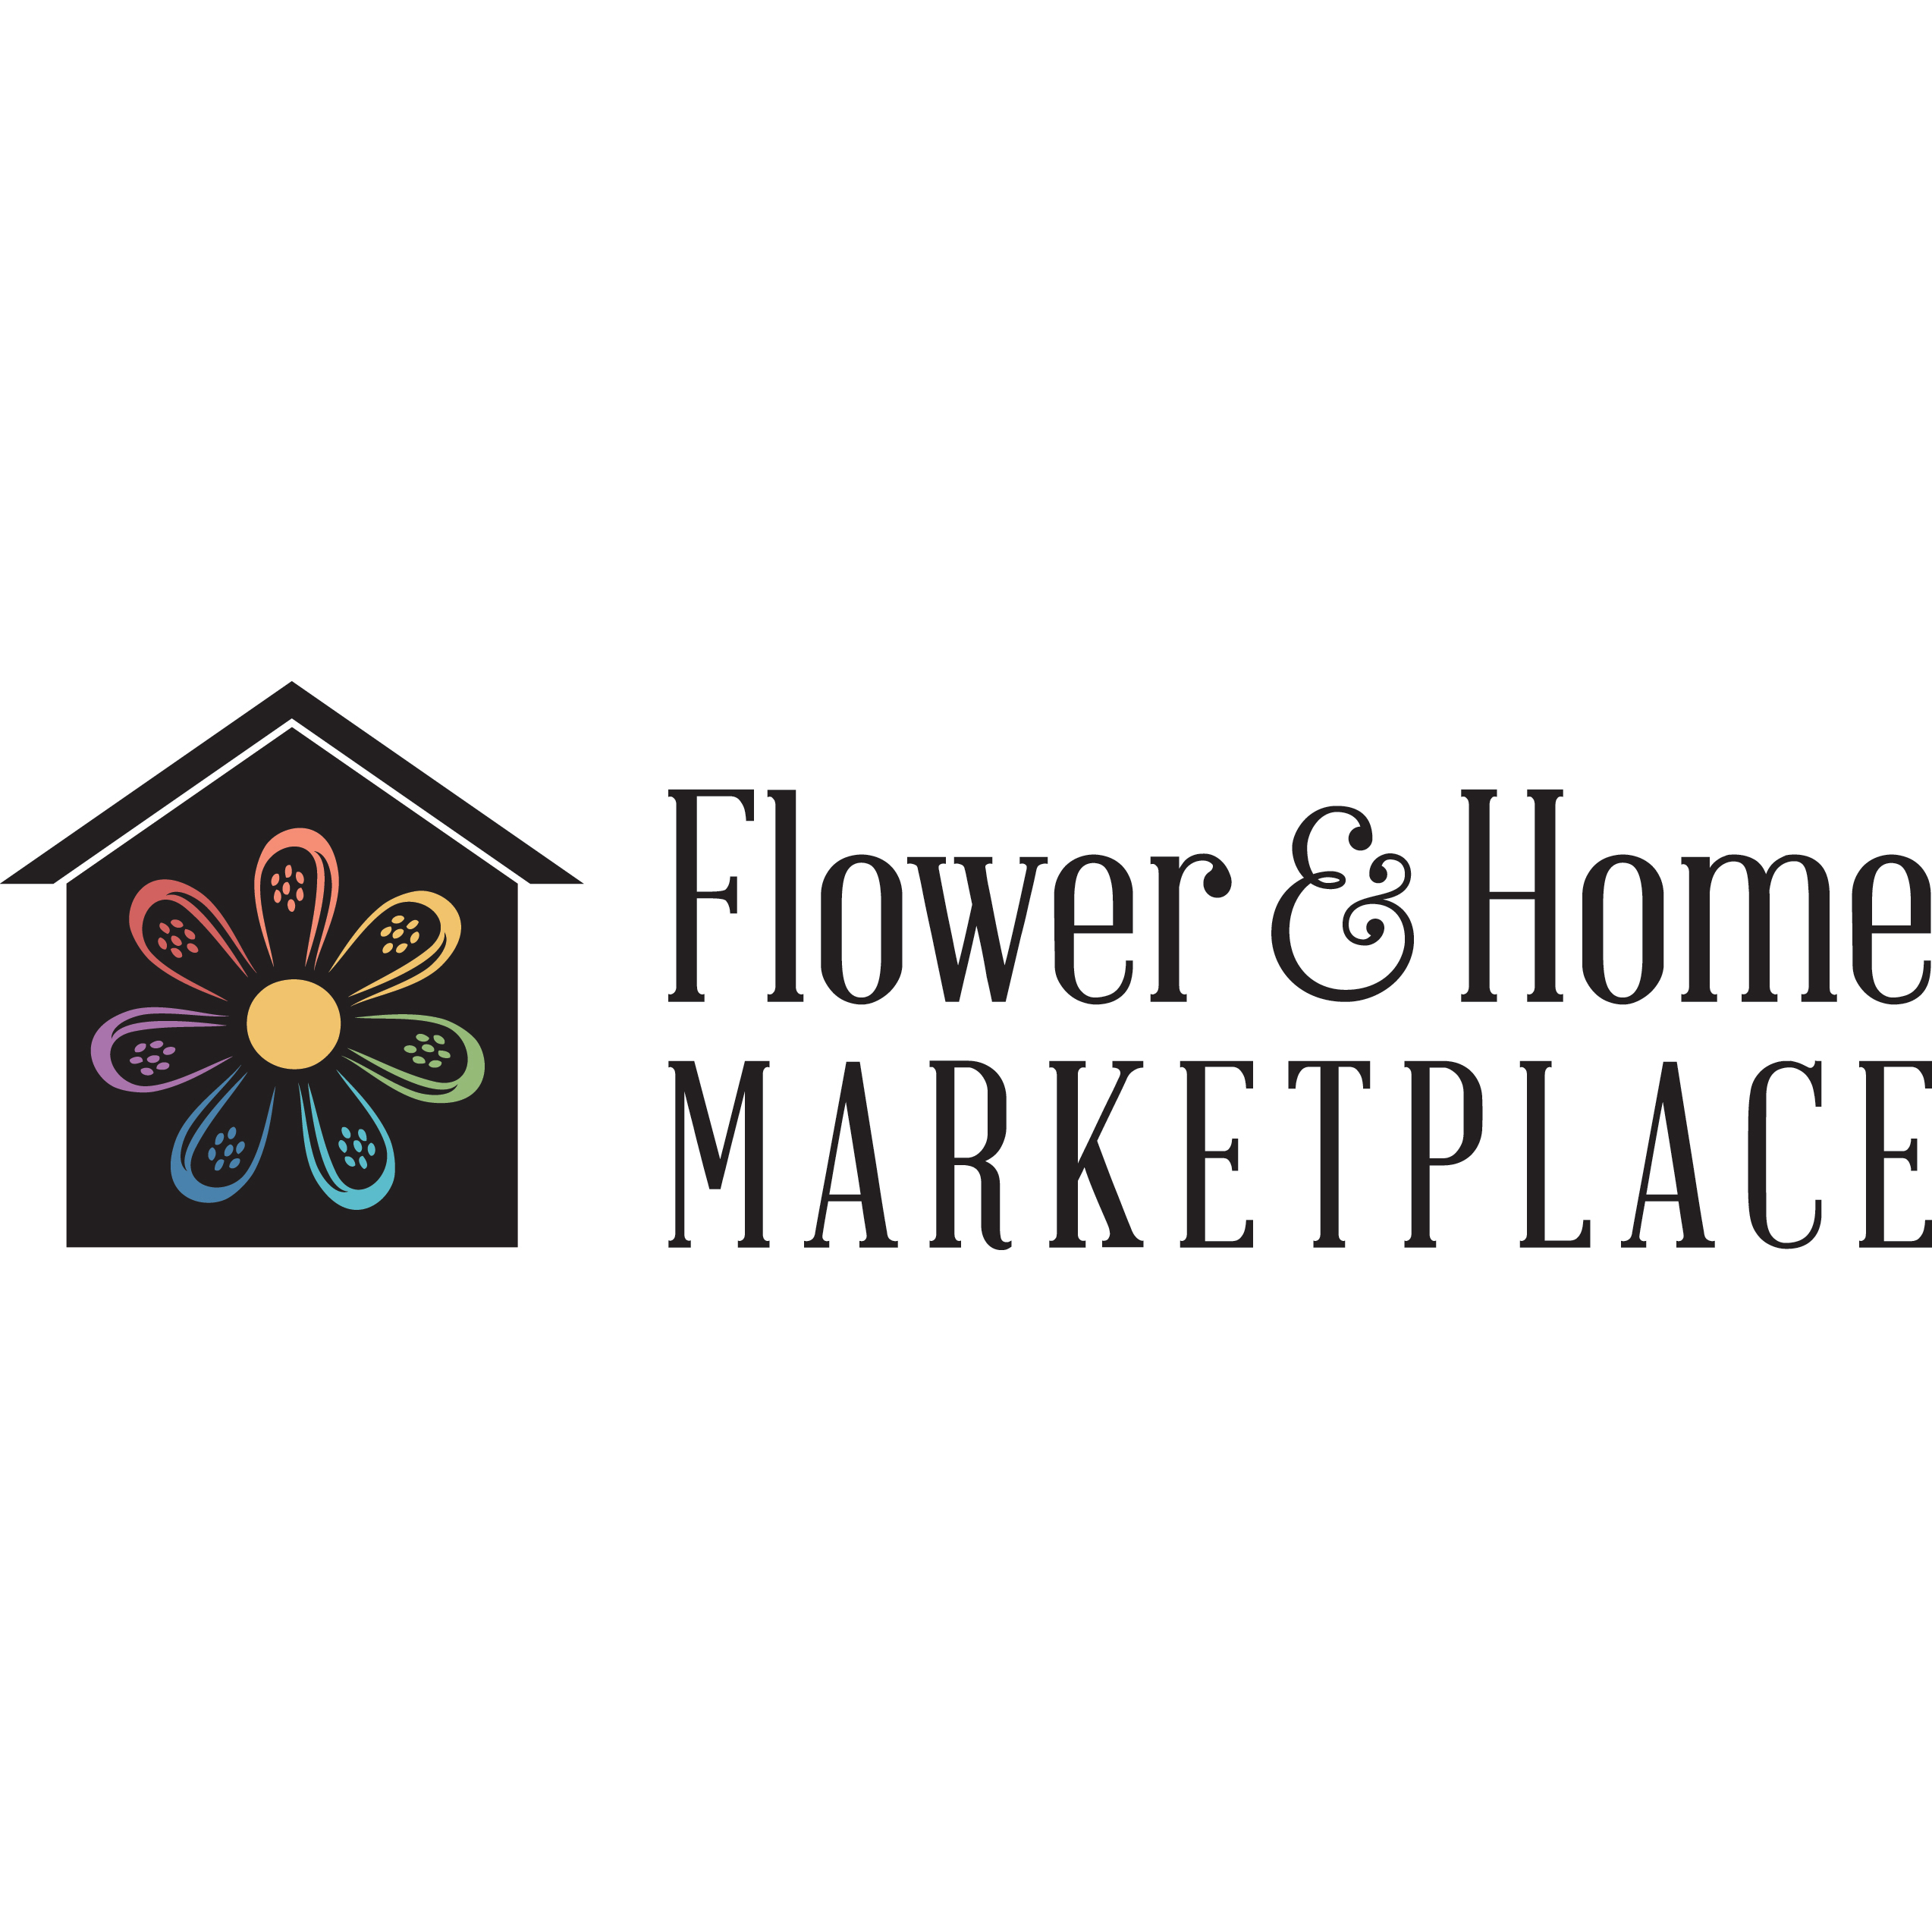 Flower & Home Marketplace